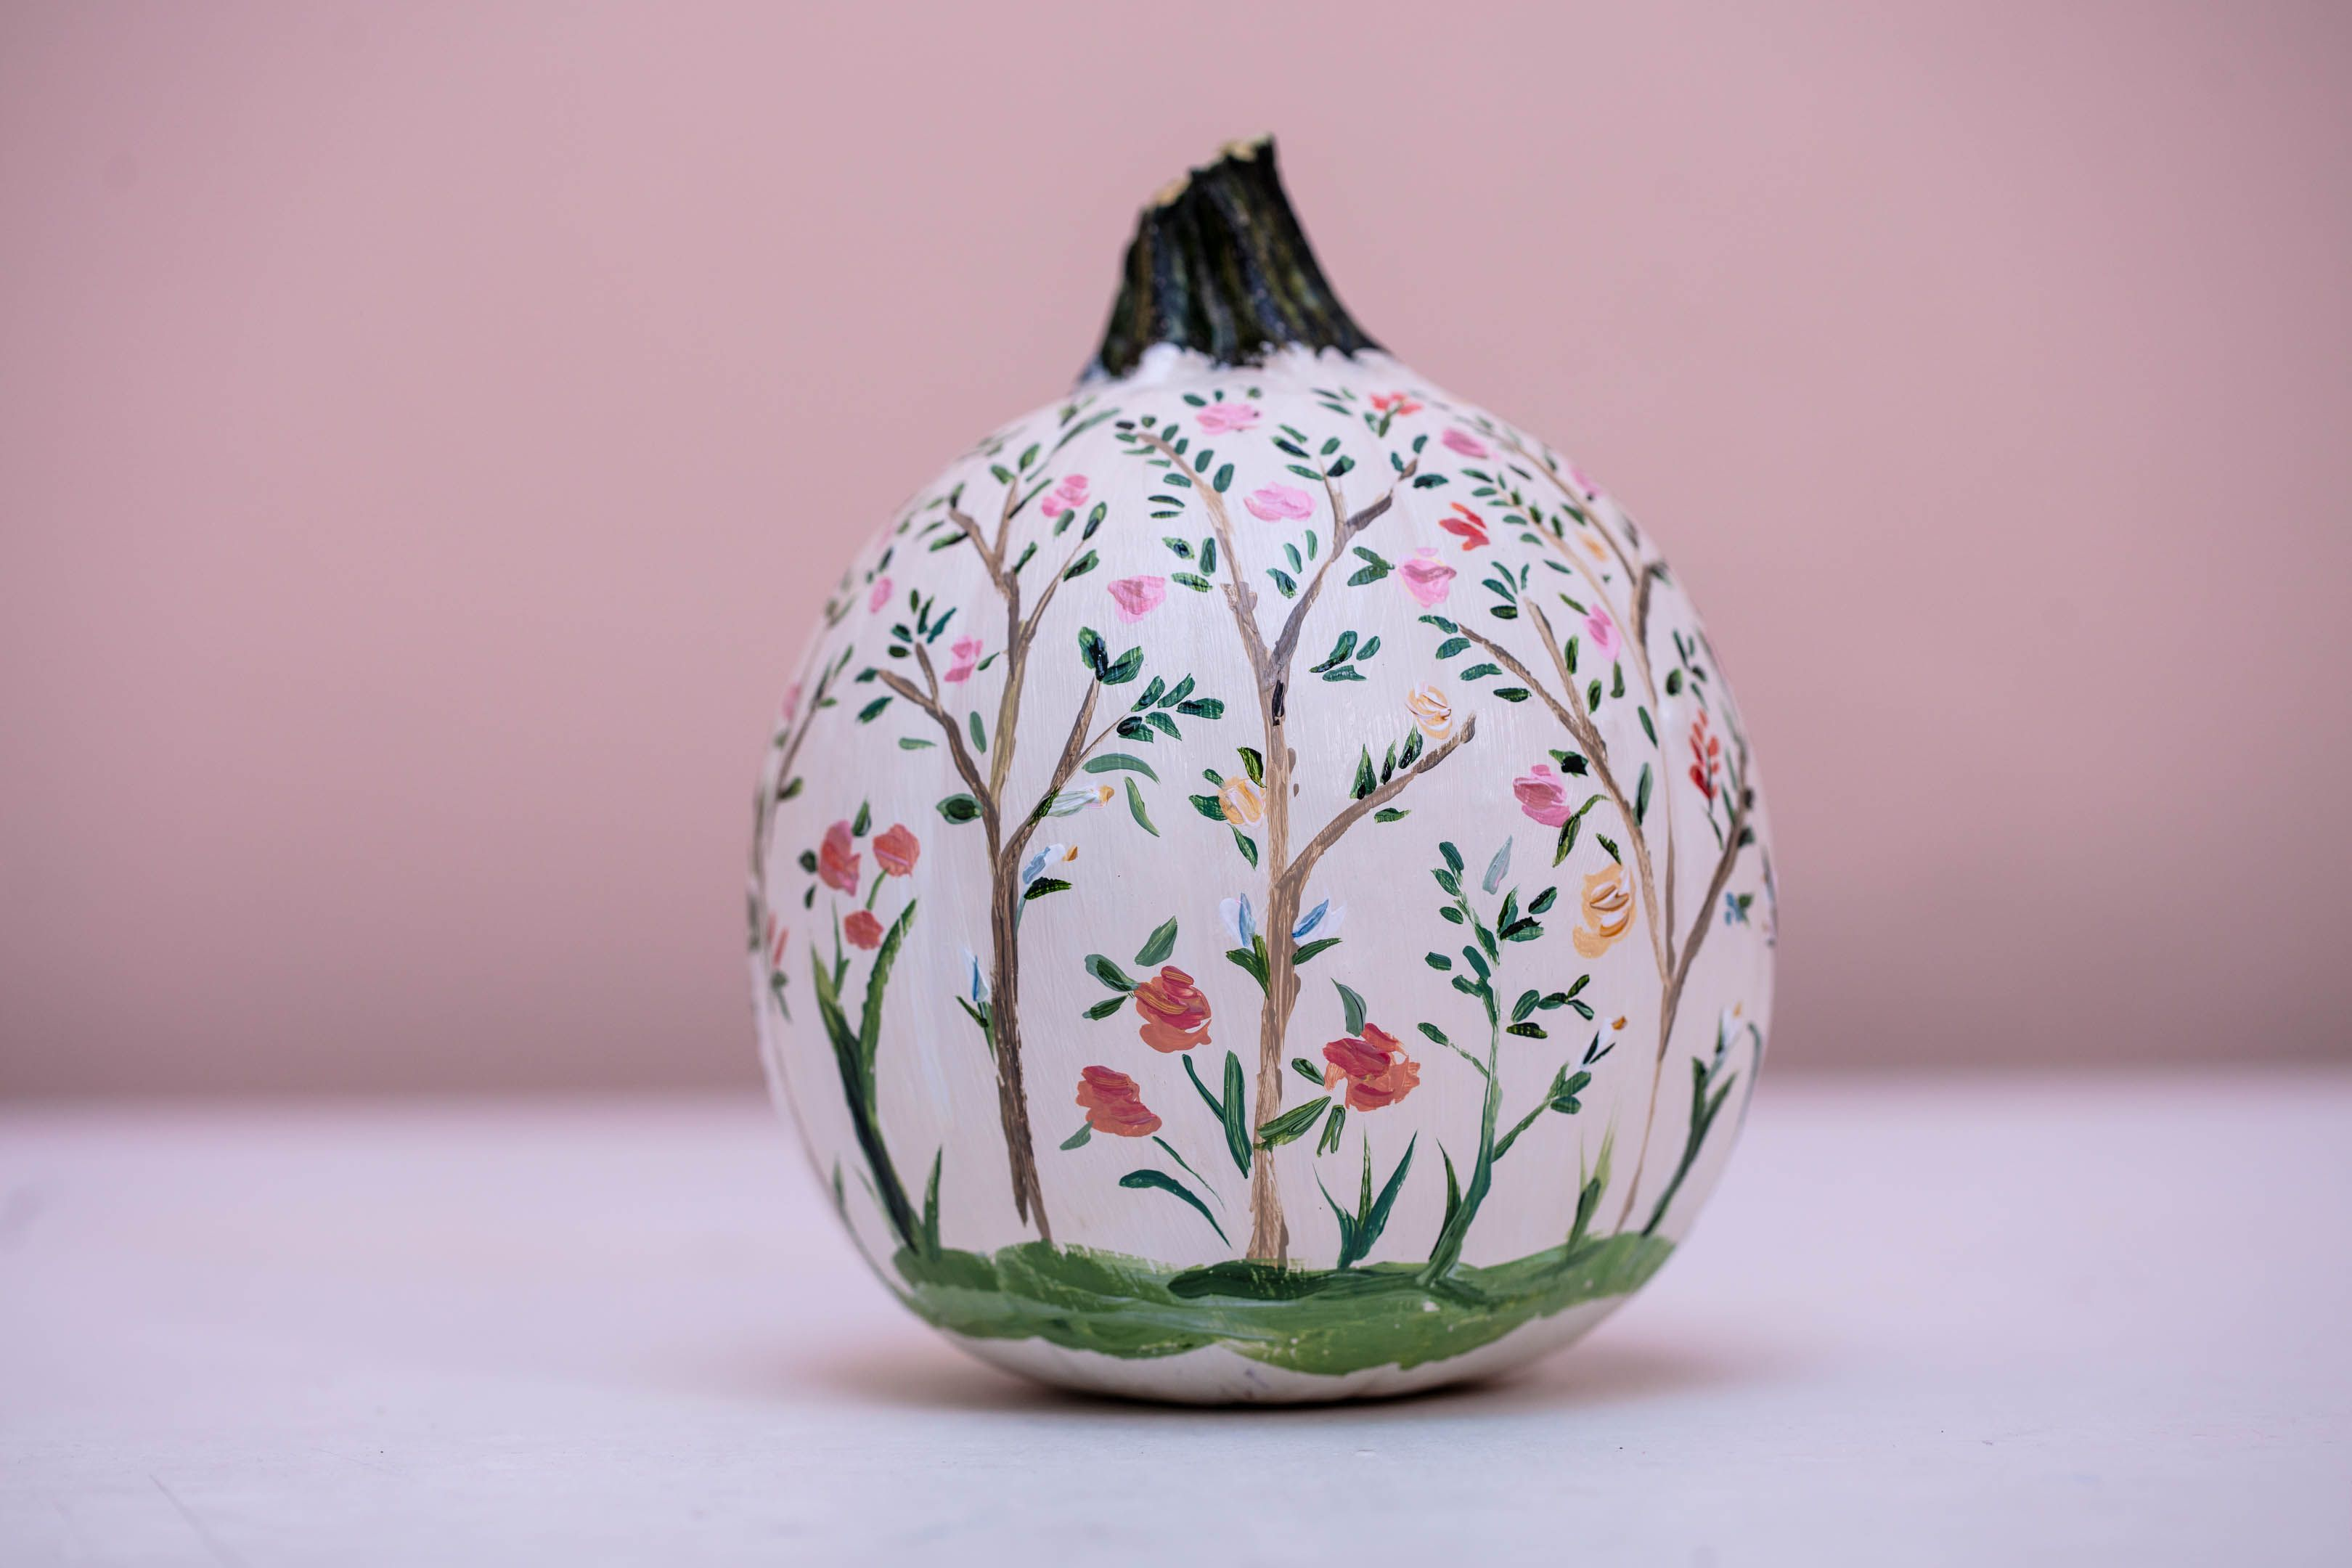 These Wallpaper-Inspired Pumpkins Are Next-Level Chic